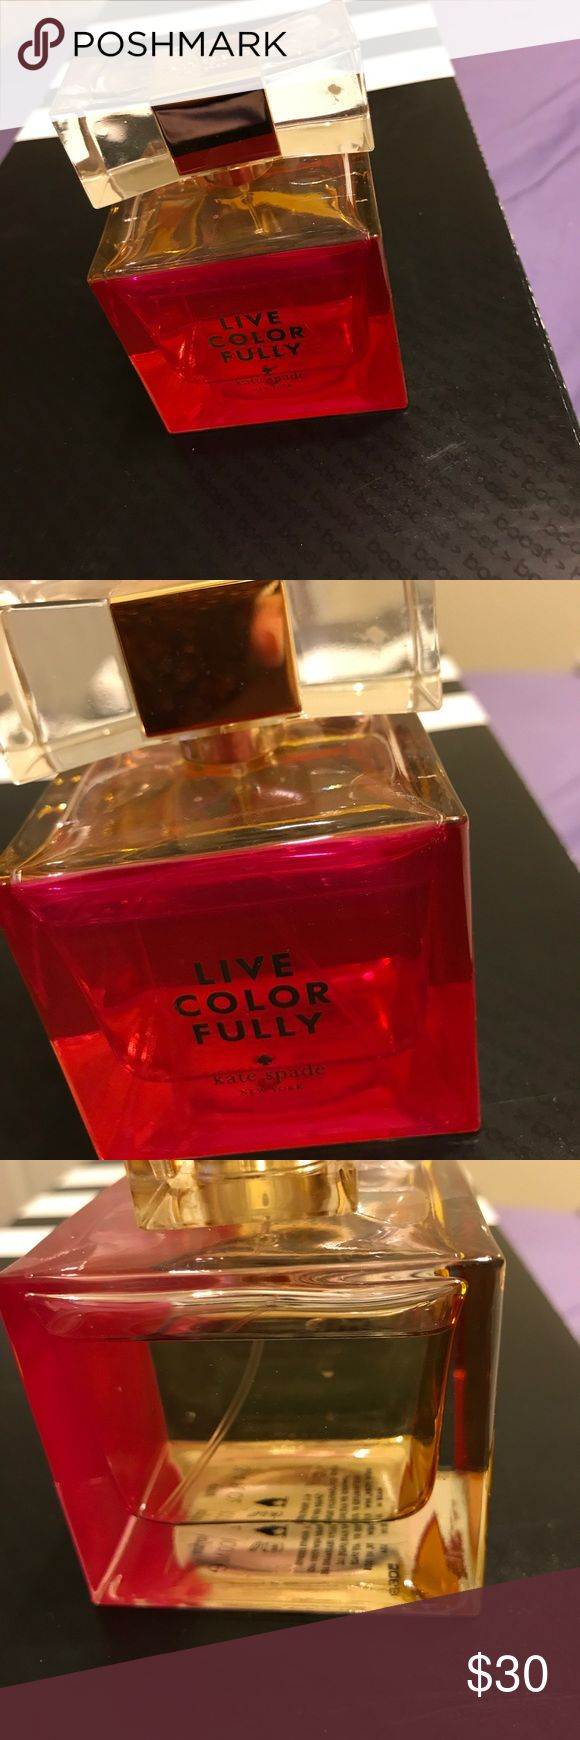 Live Color Fully Kate Spade perfume Kate spade perfume---Live Color Fully kate spade Other